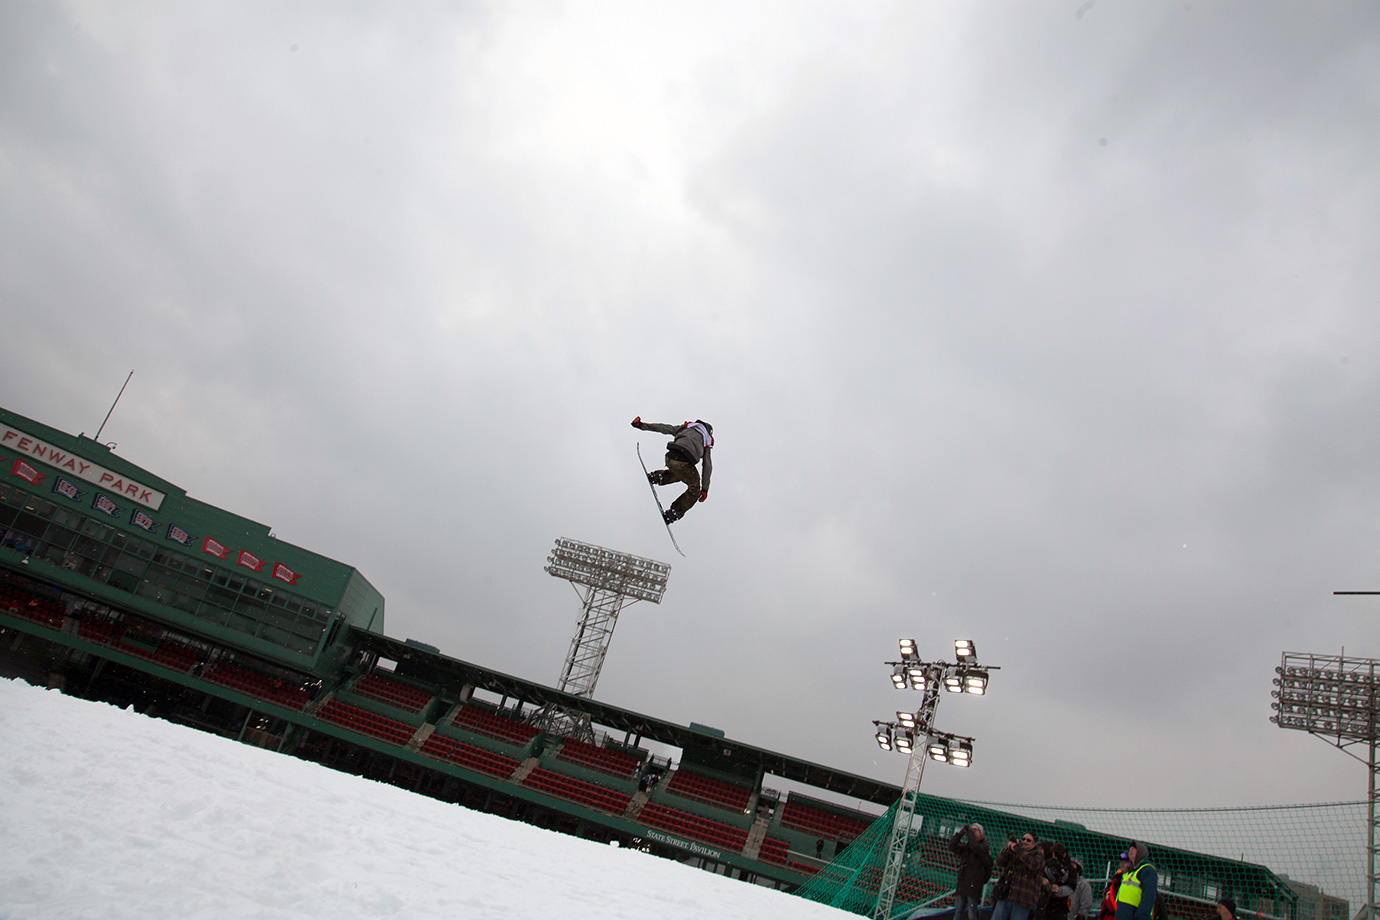 A snowboarder rises above the iconic Fenway Park sign during Polartec Big Air practice.